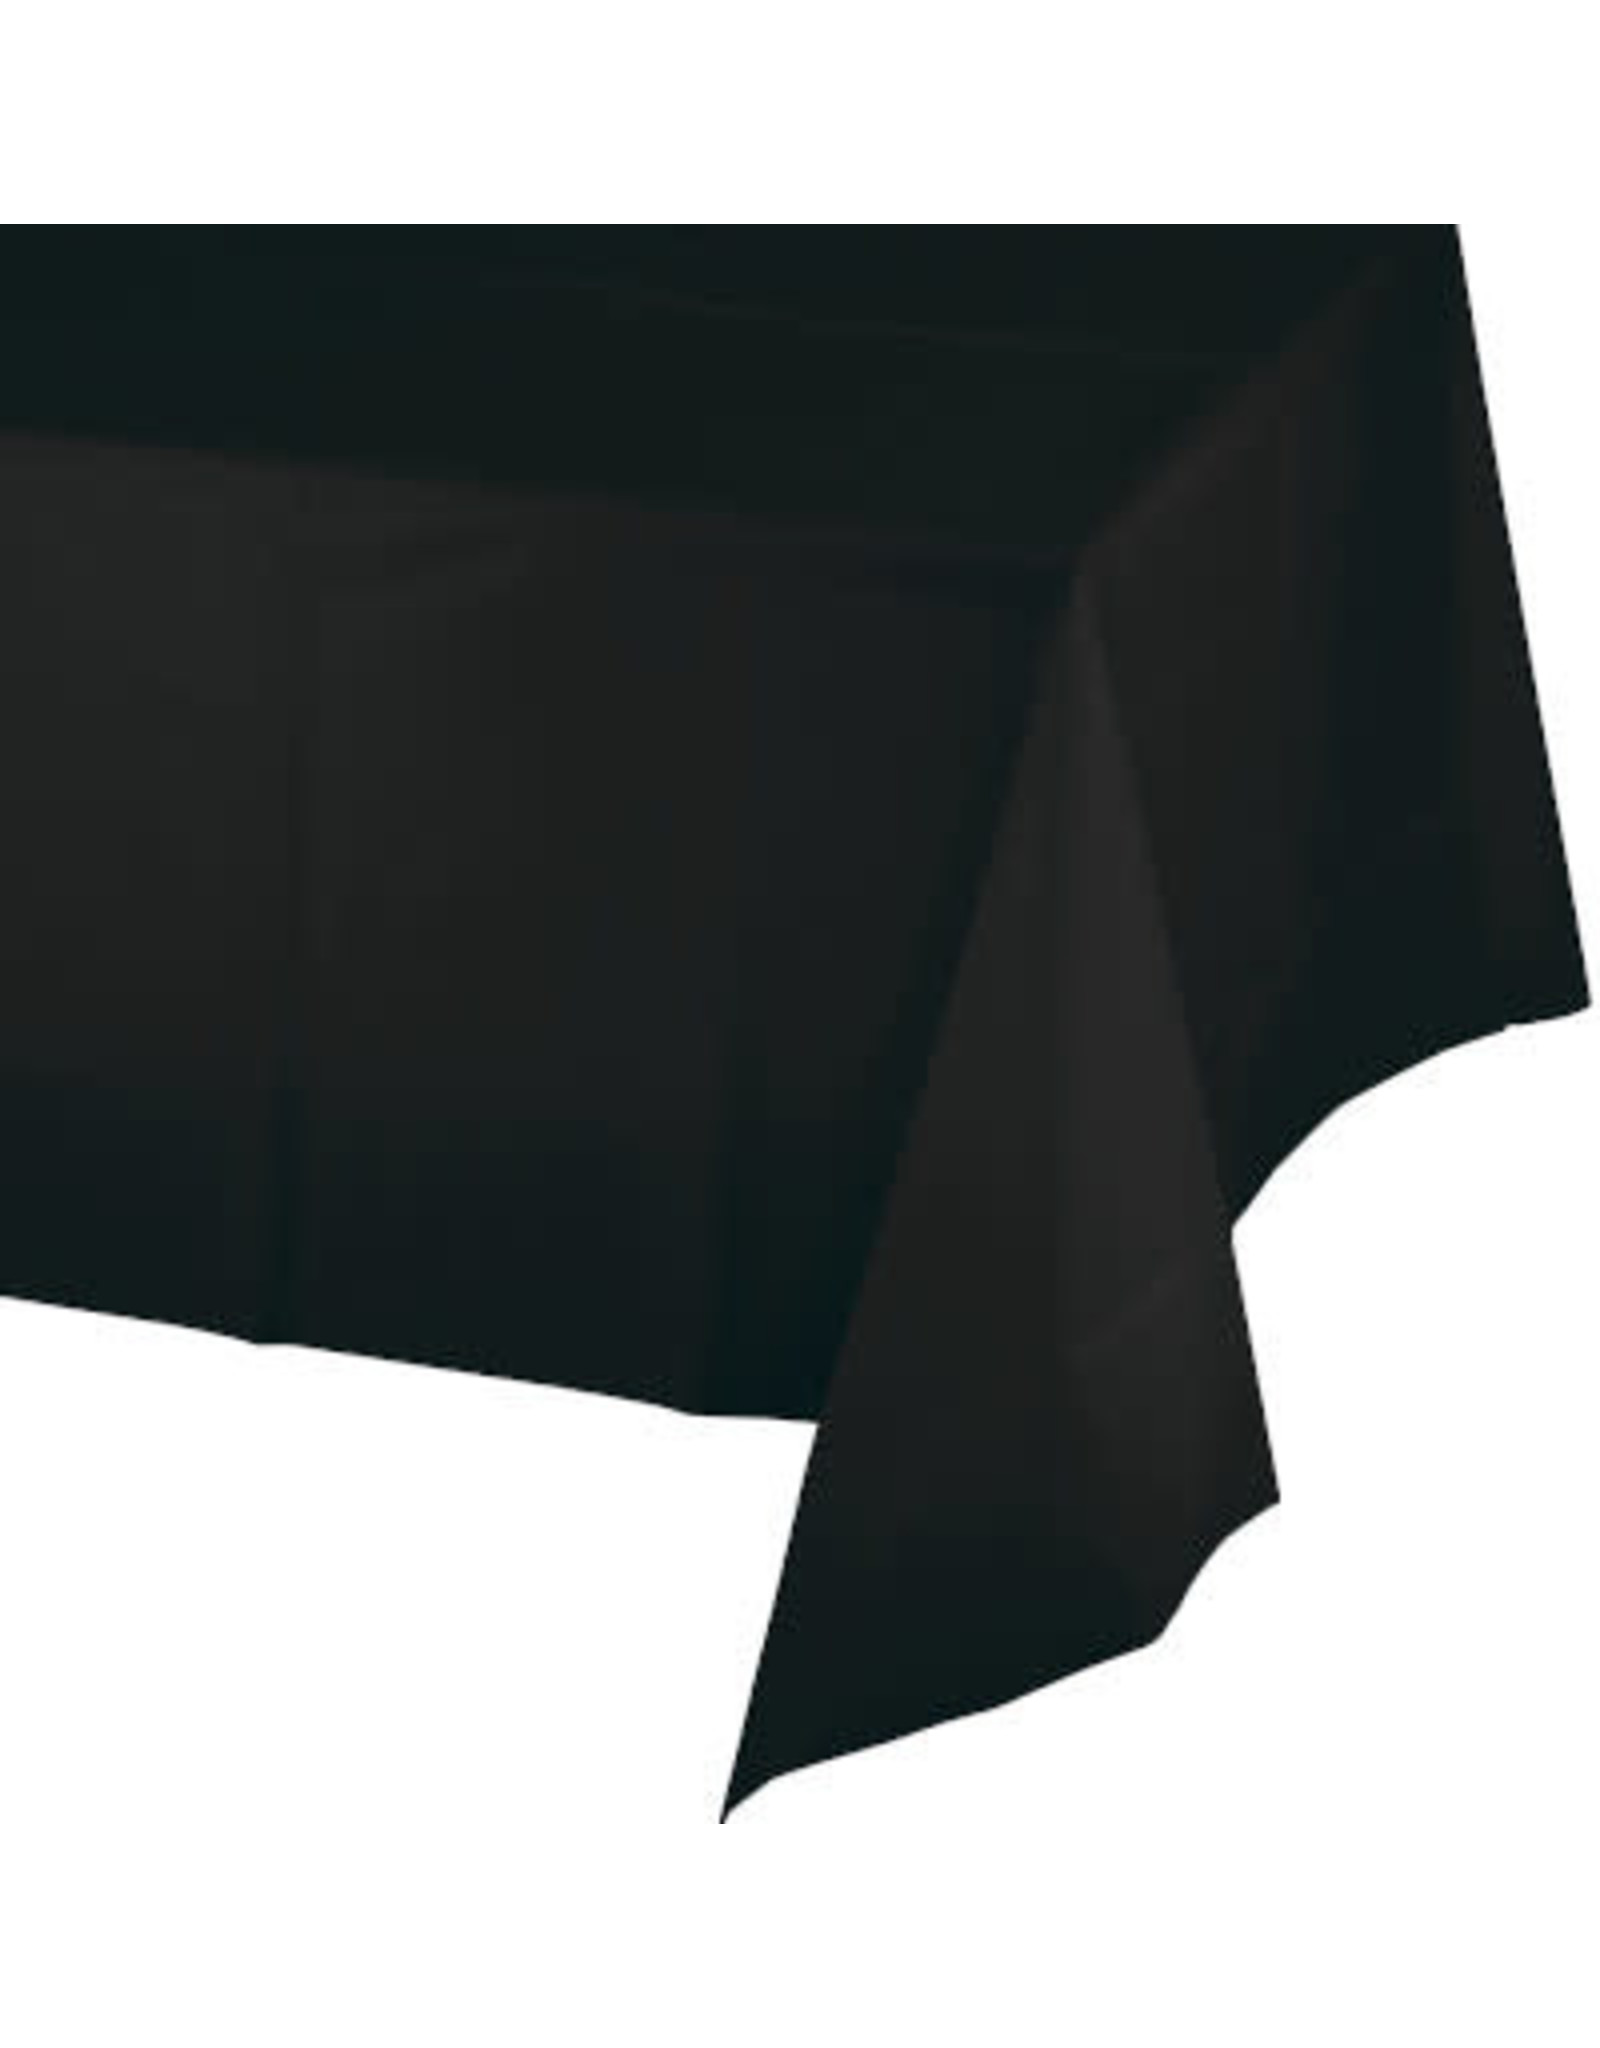 Touch of Color BLACK PLASTIC TABLECLOTH